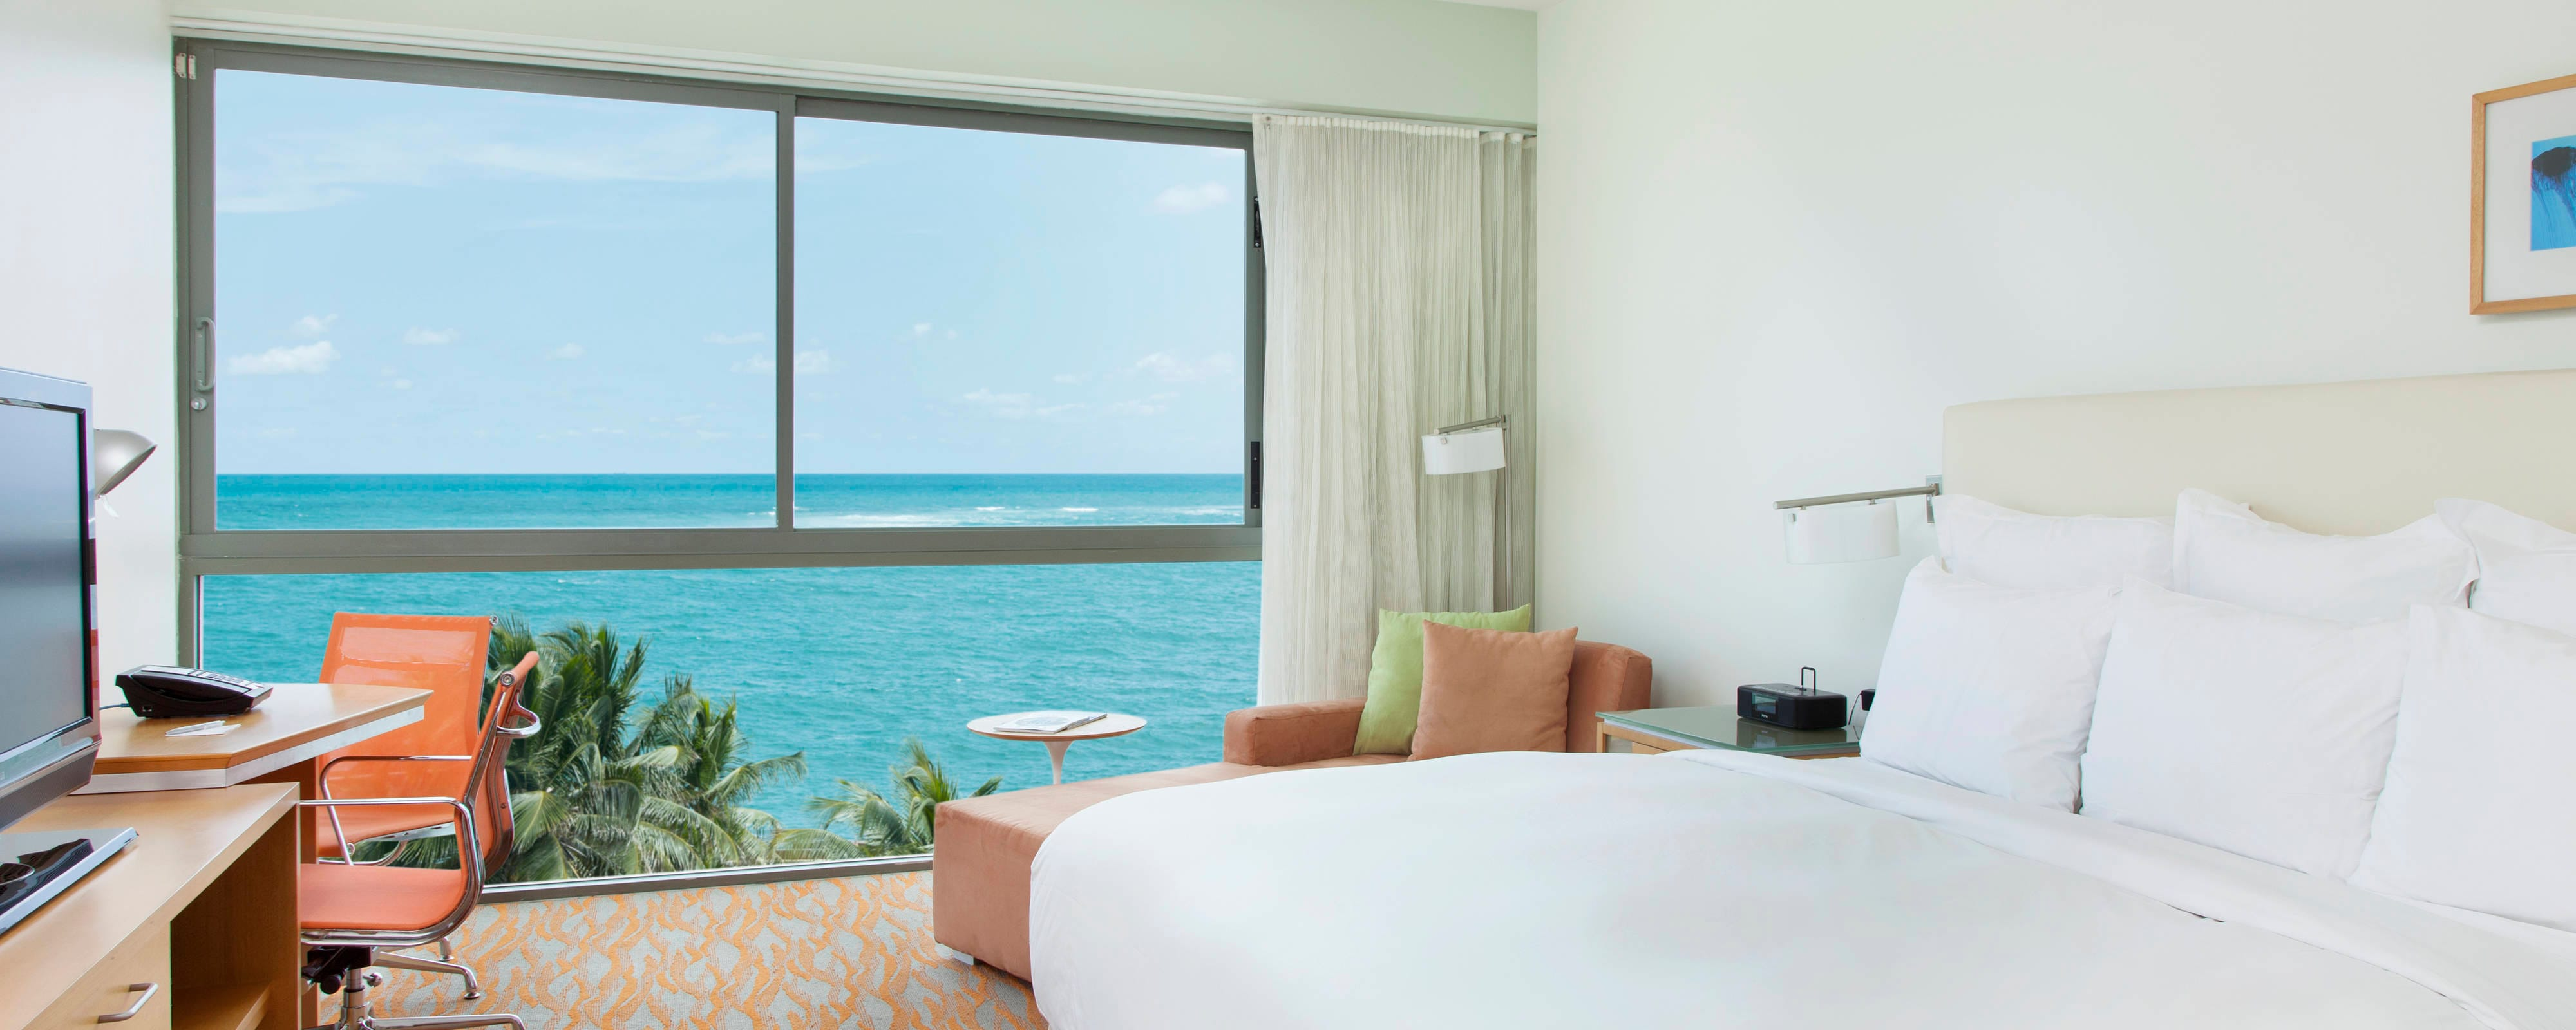 La Concha Renaissance San Juan Resort Reviews | San Juan Hotel Reviews